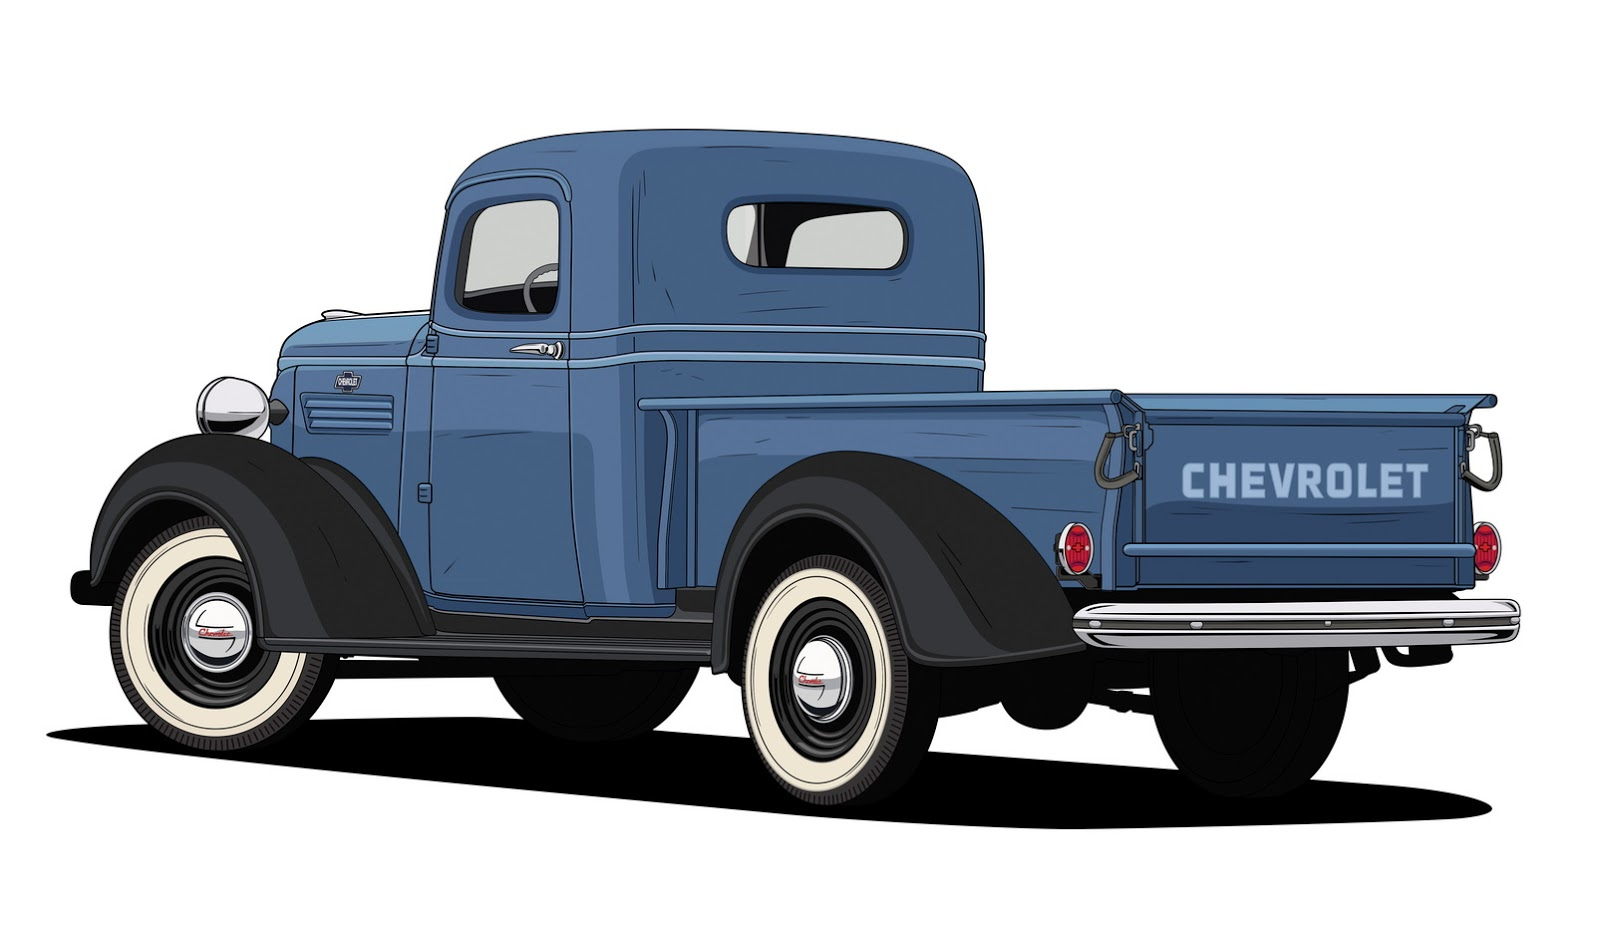 chevy-100yrs-iconic-designs-6